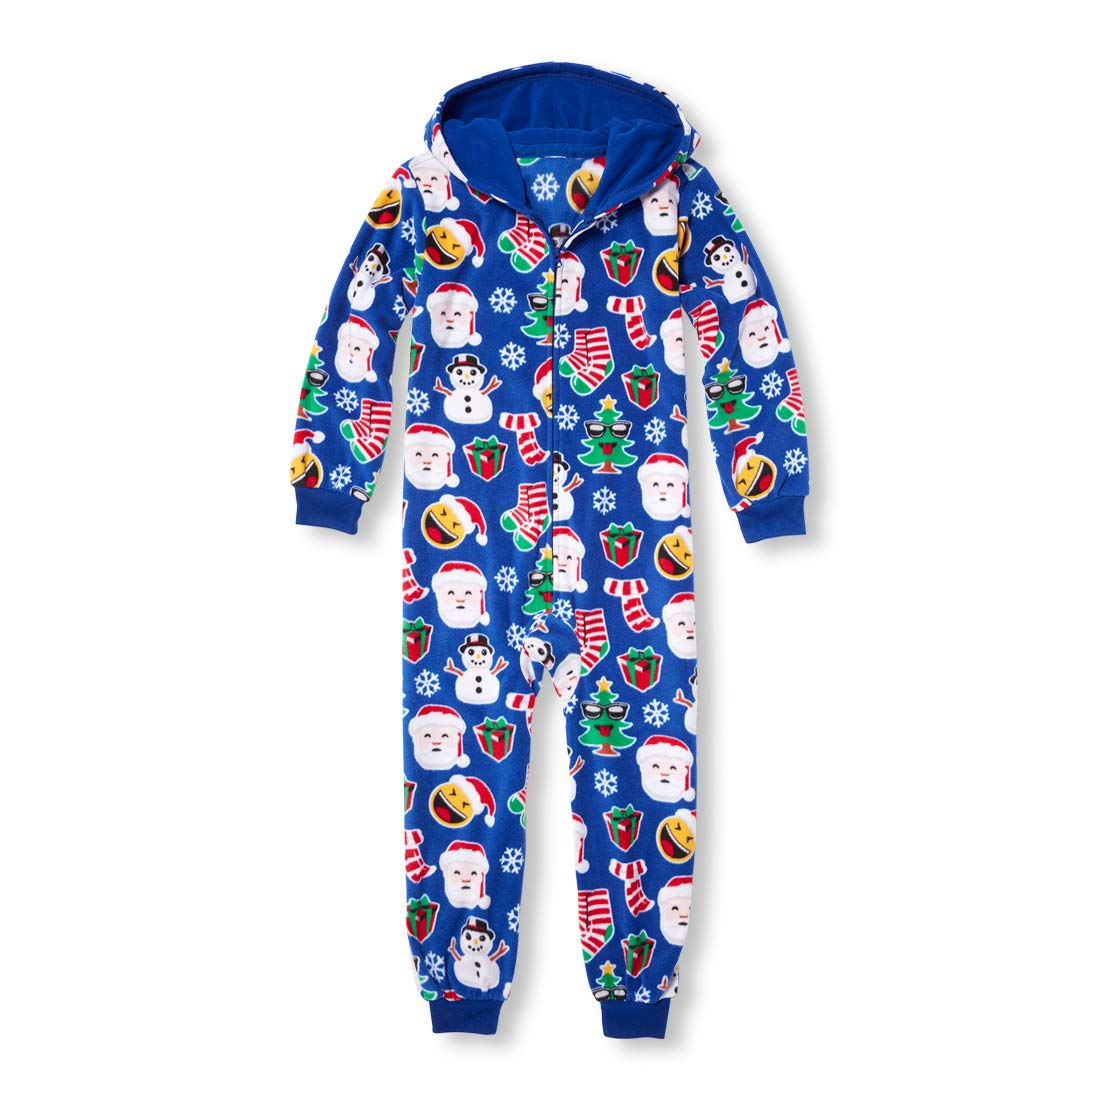 The Children's Place Big Boys Christmas Onesie The Children' s Place 2113821